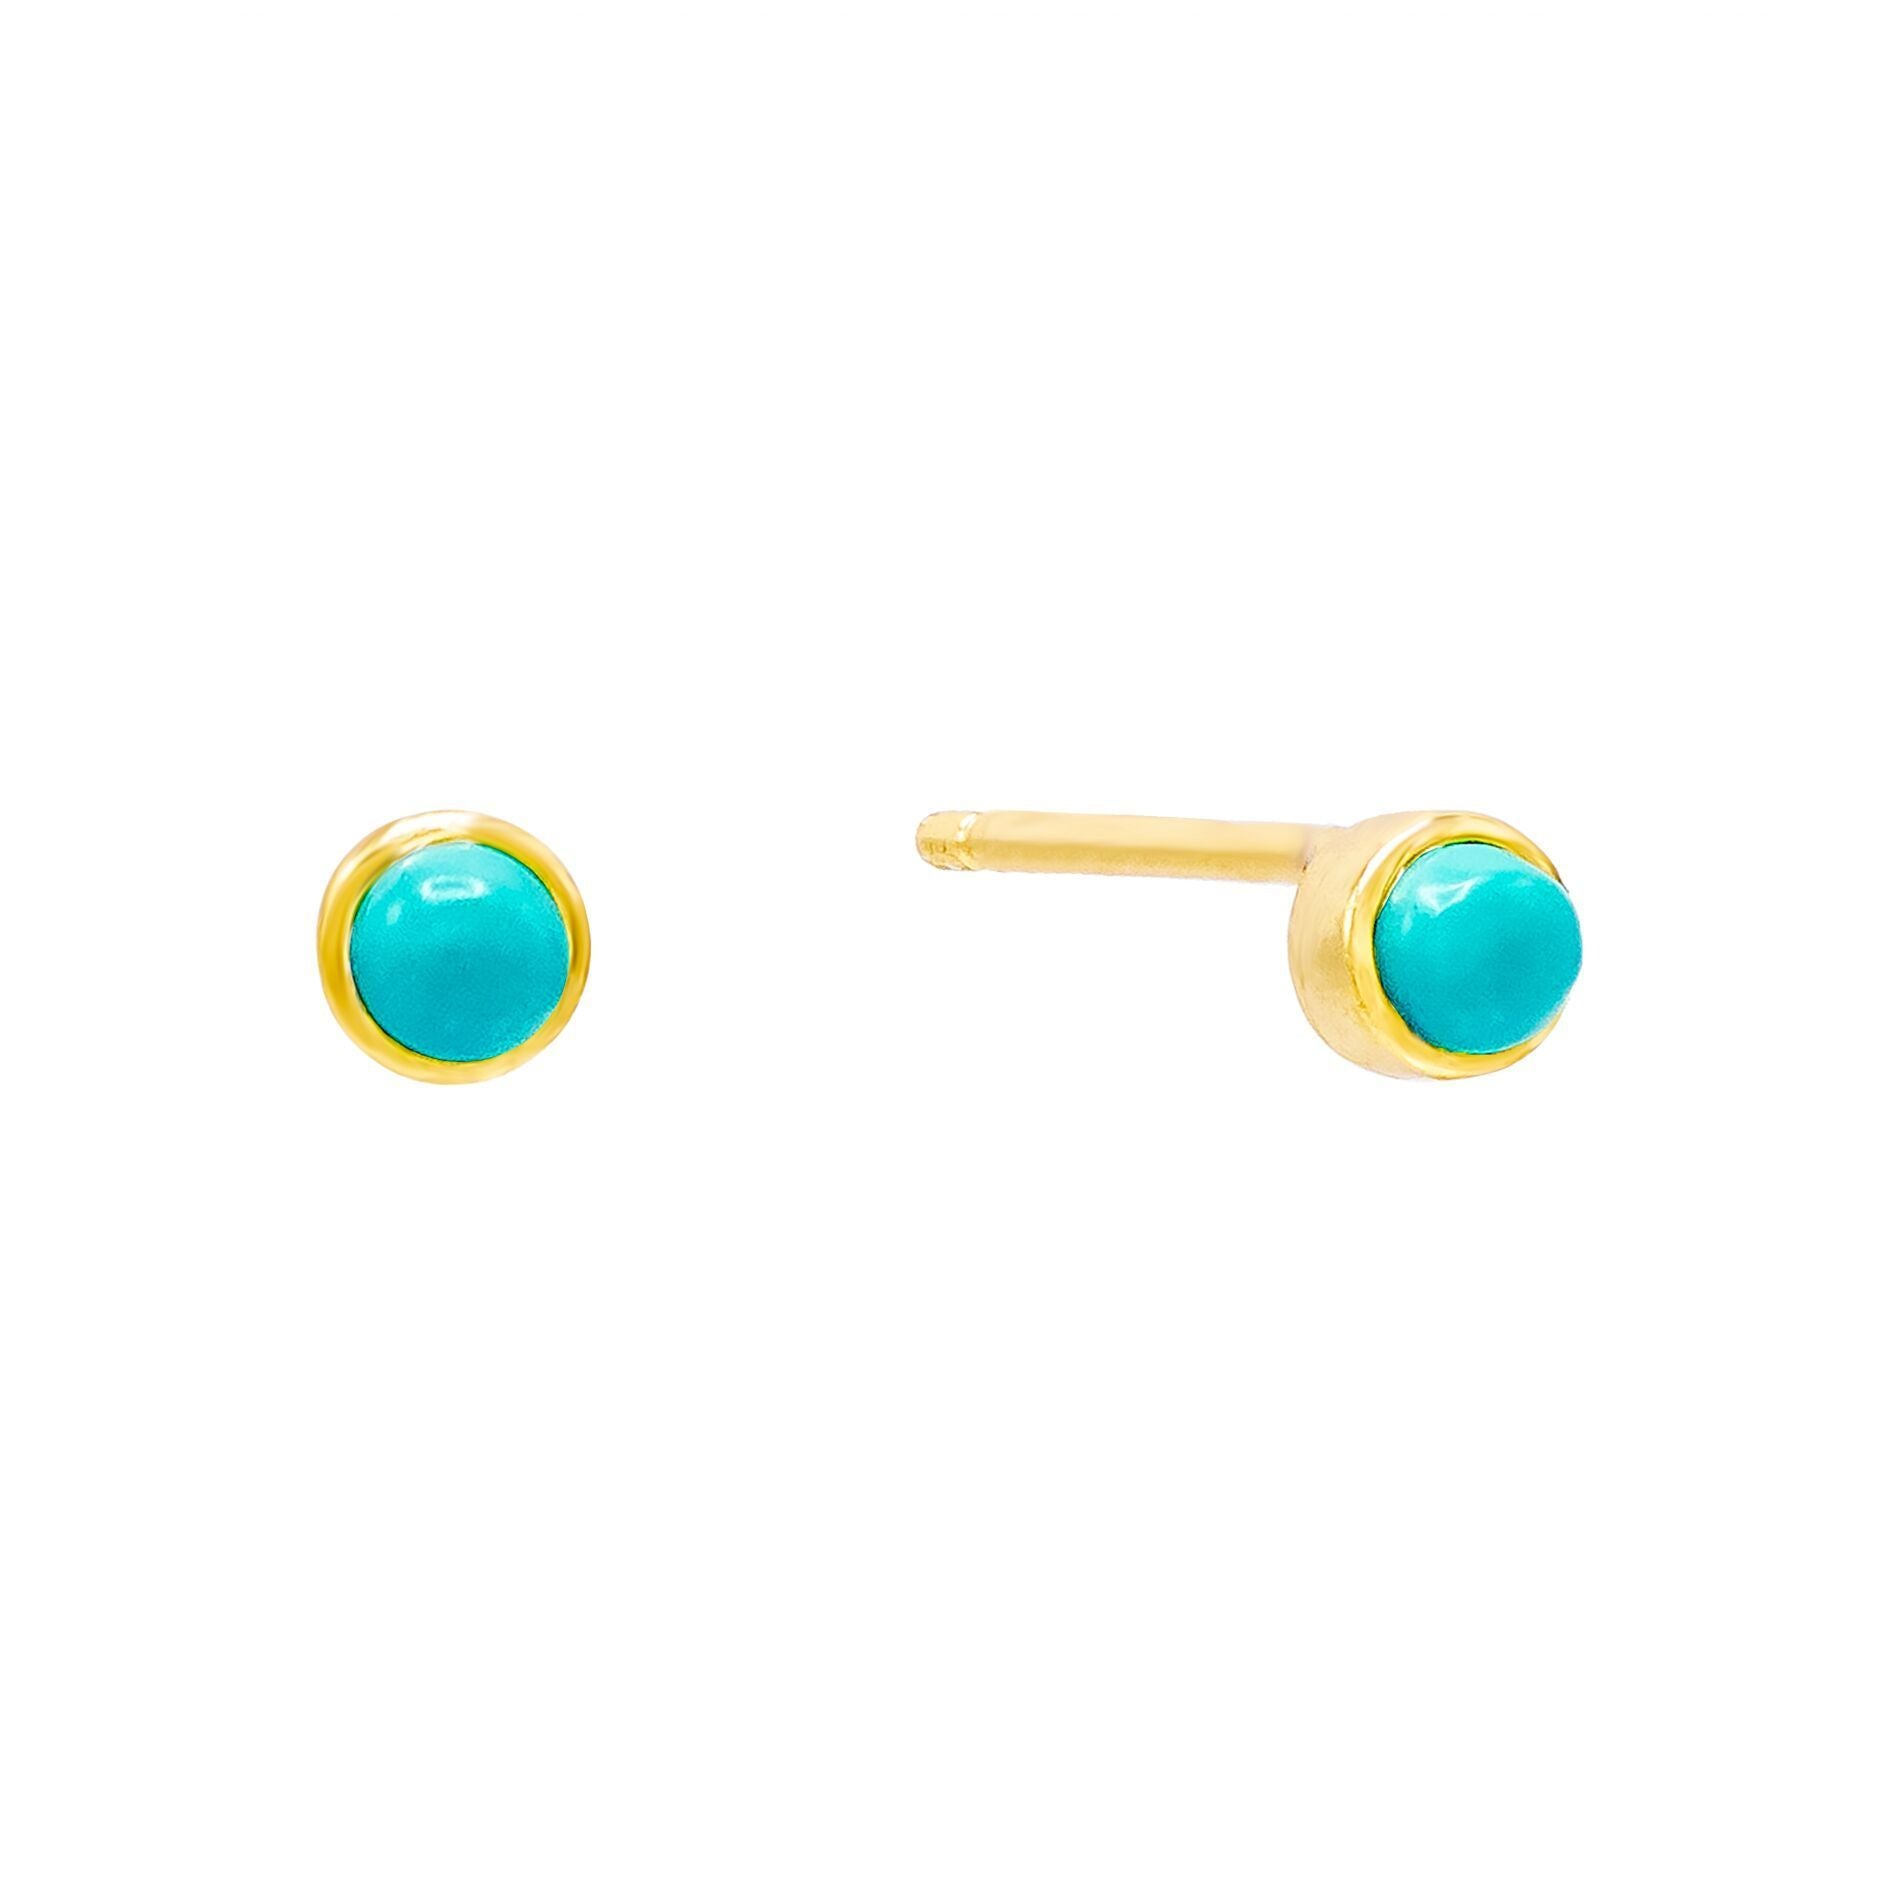 Turquoise Stone Stud Earring Turquoise | Urban Accessories NYC